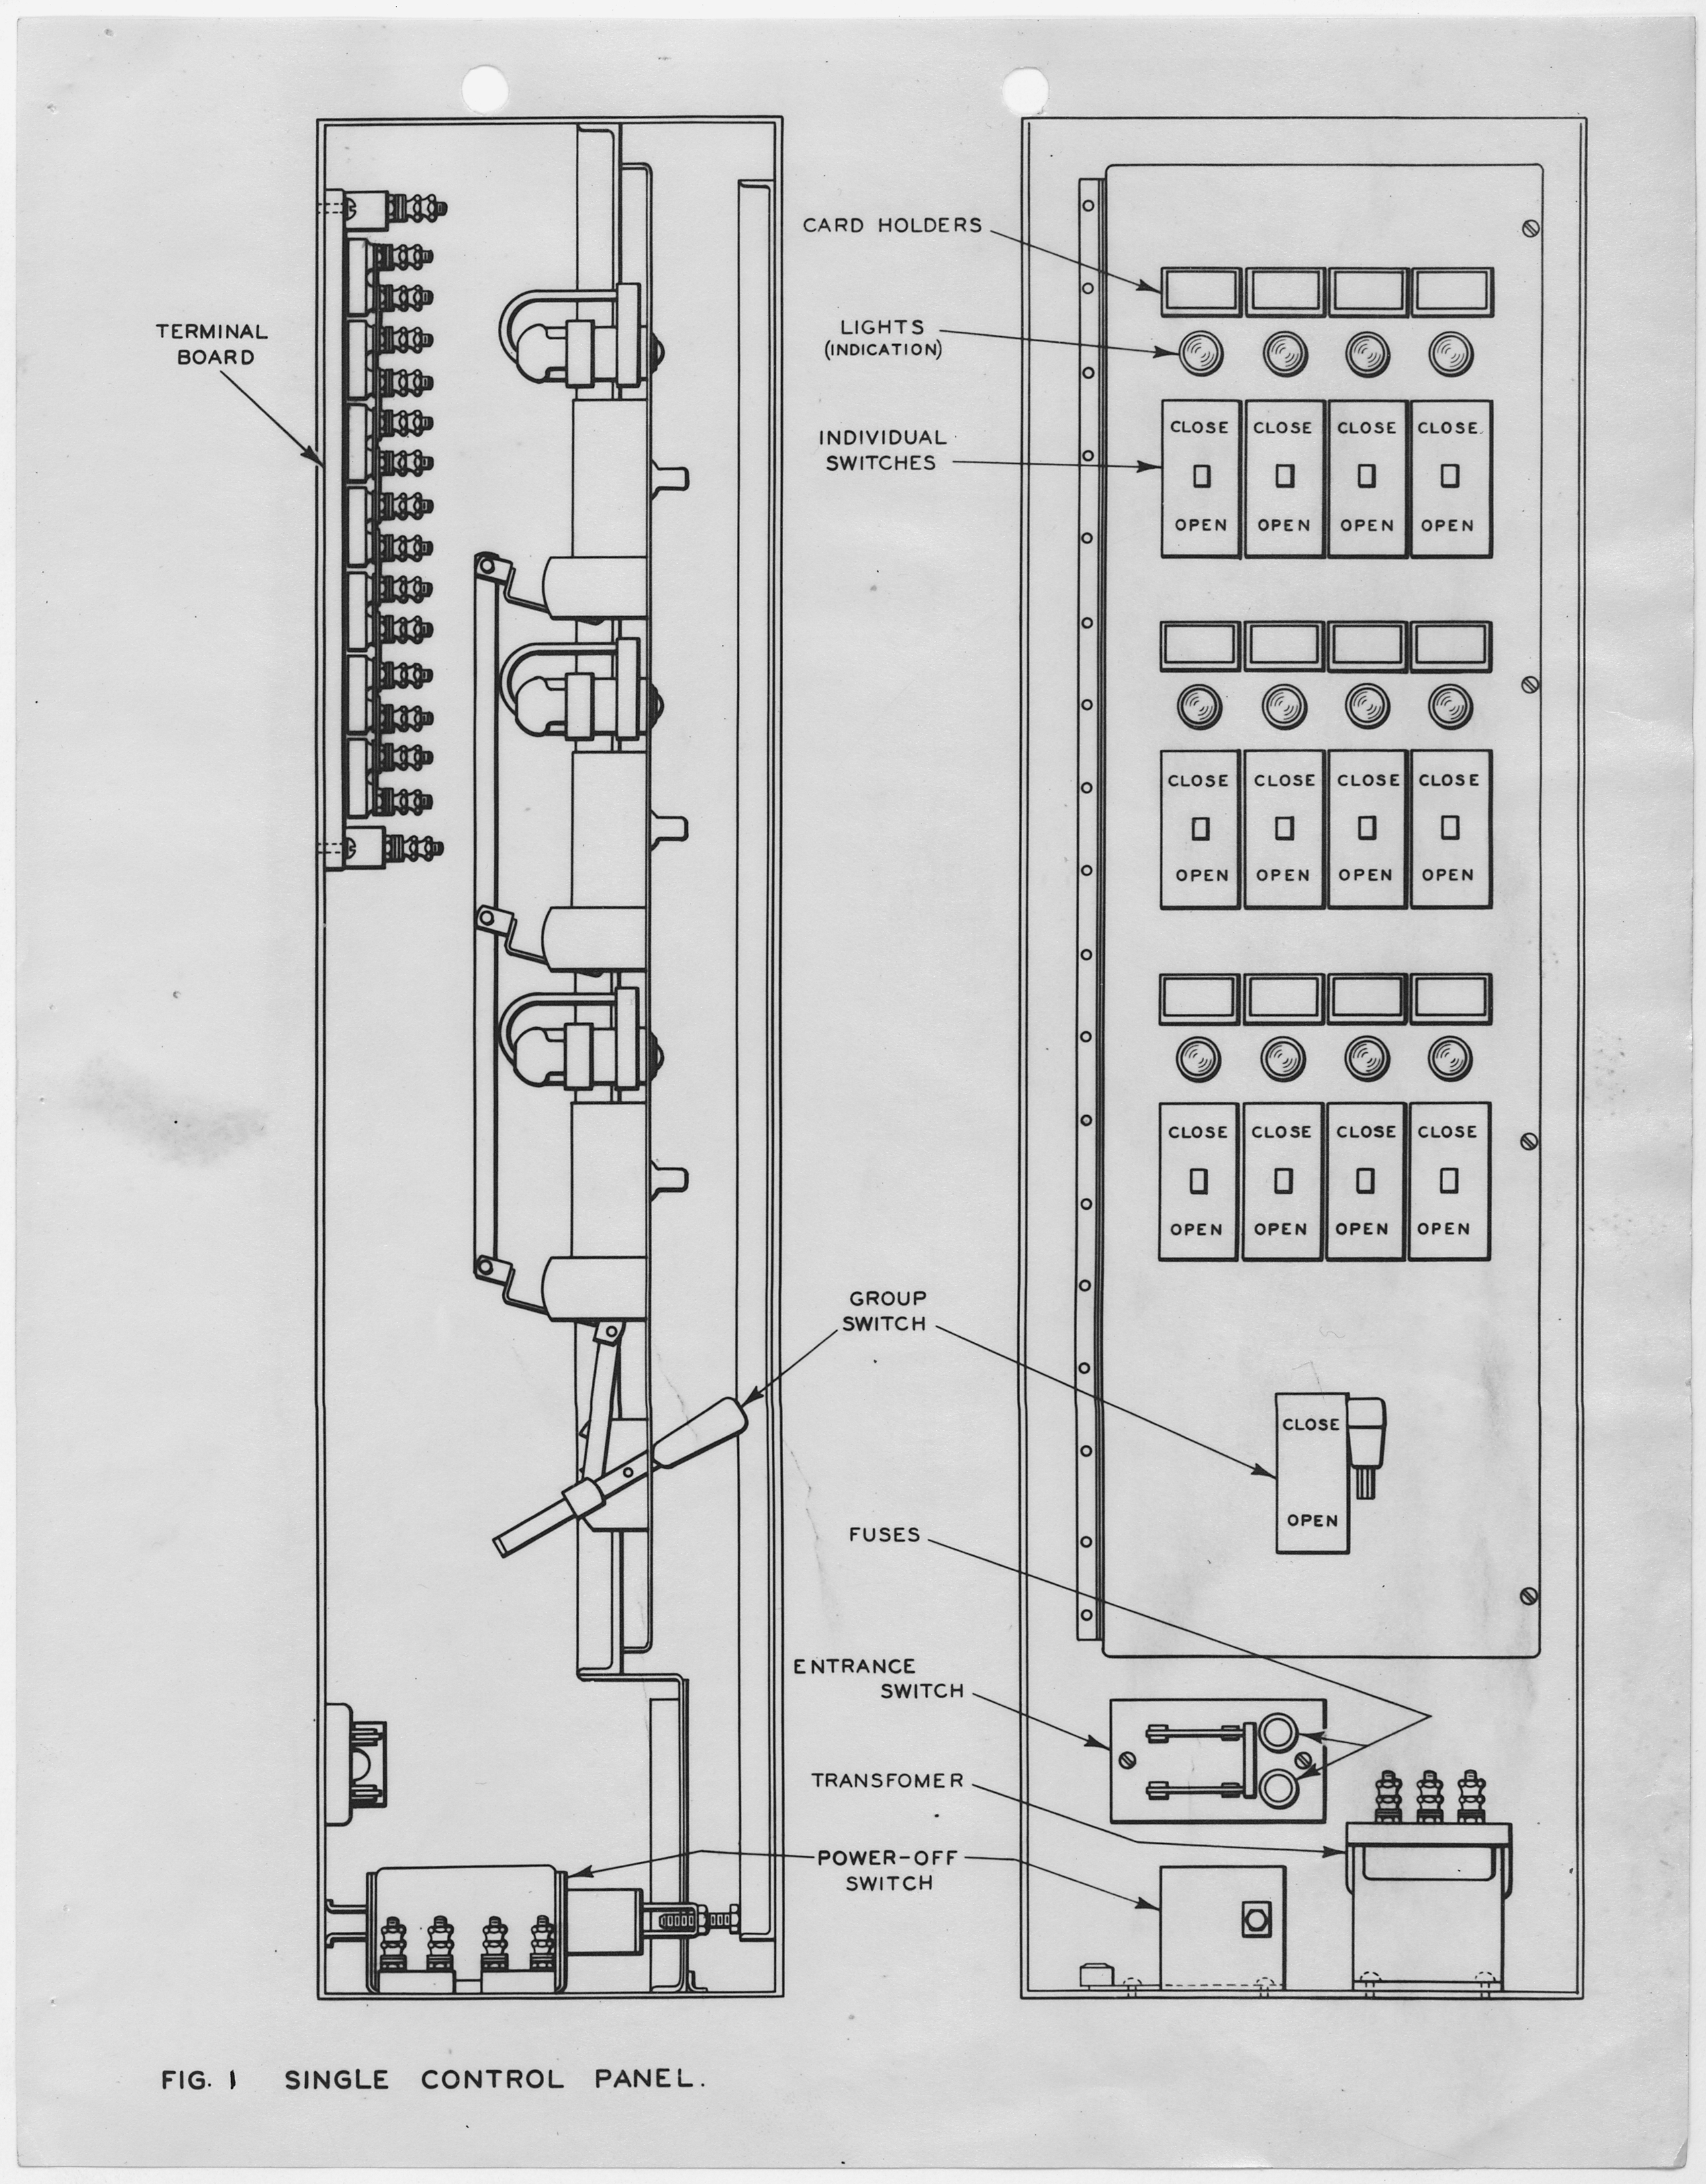 FileElectrical door locking and operating device Figure 1 Single control panel.  sc 1 st  Wikimedia Commons & File:Electrical door locking and operating device Figure 1 ...